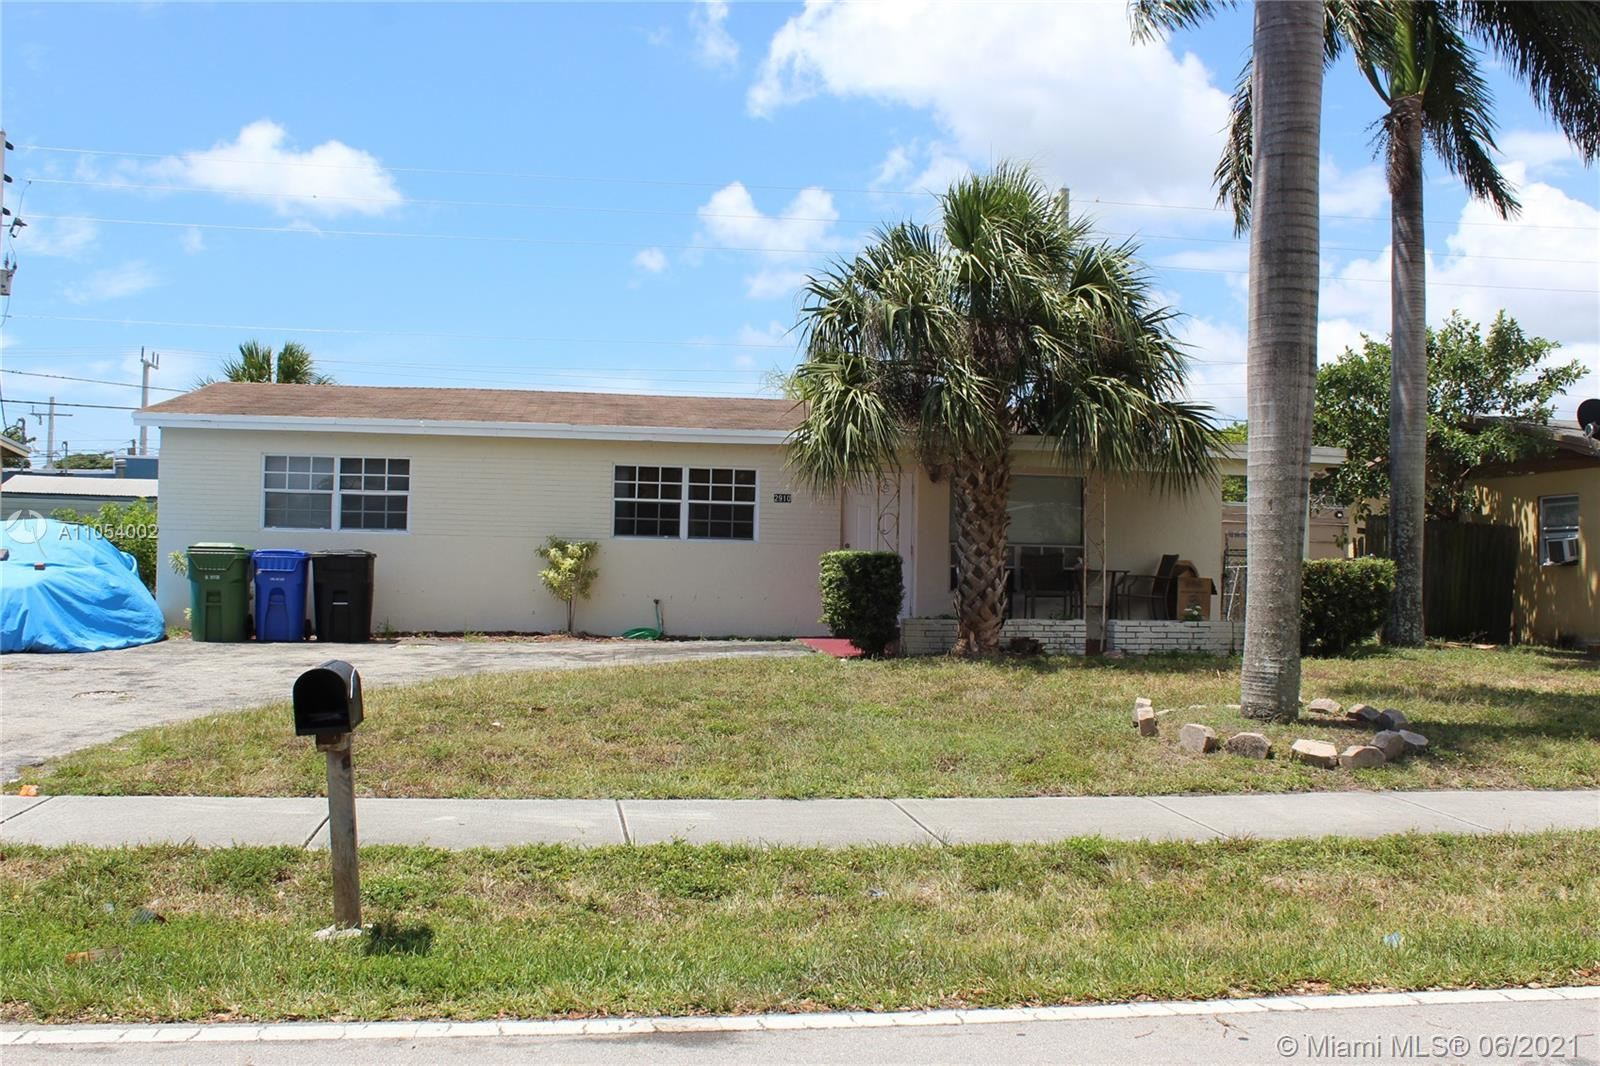 2910 NW 20th St, Fort Lauderdale, FL 33311 - #: A11054002